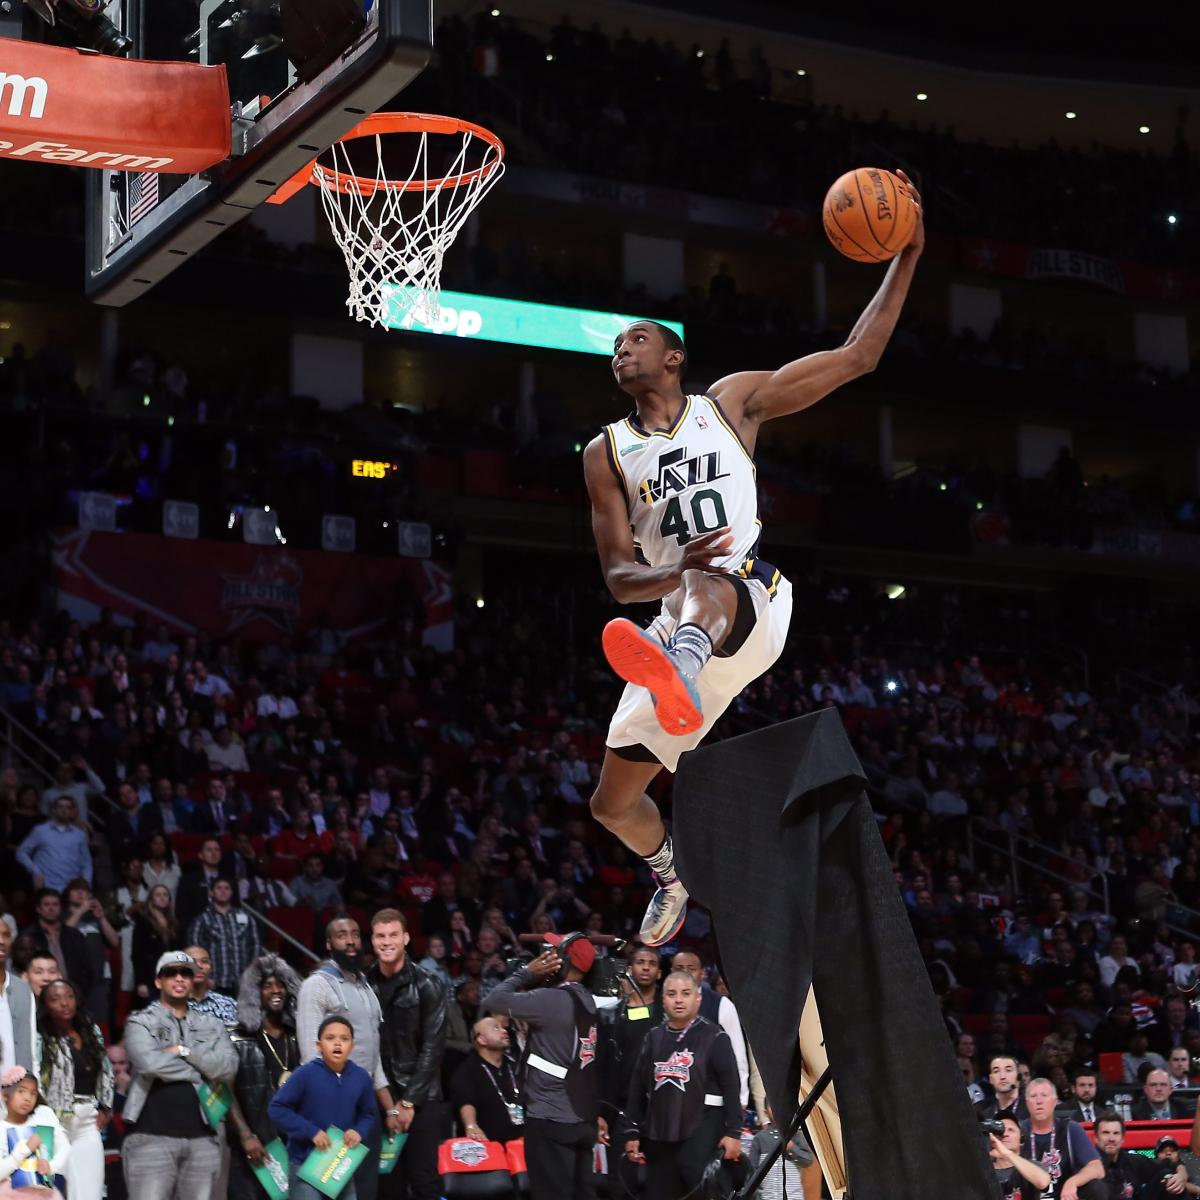 Nuggets Clippers Highlights: NBA Slam Dunk Contest 2013: Must-See Jams From Epic All